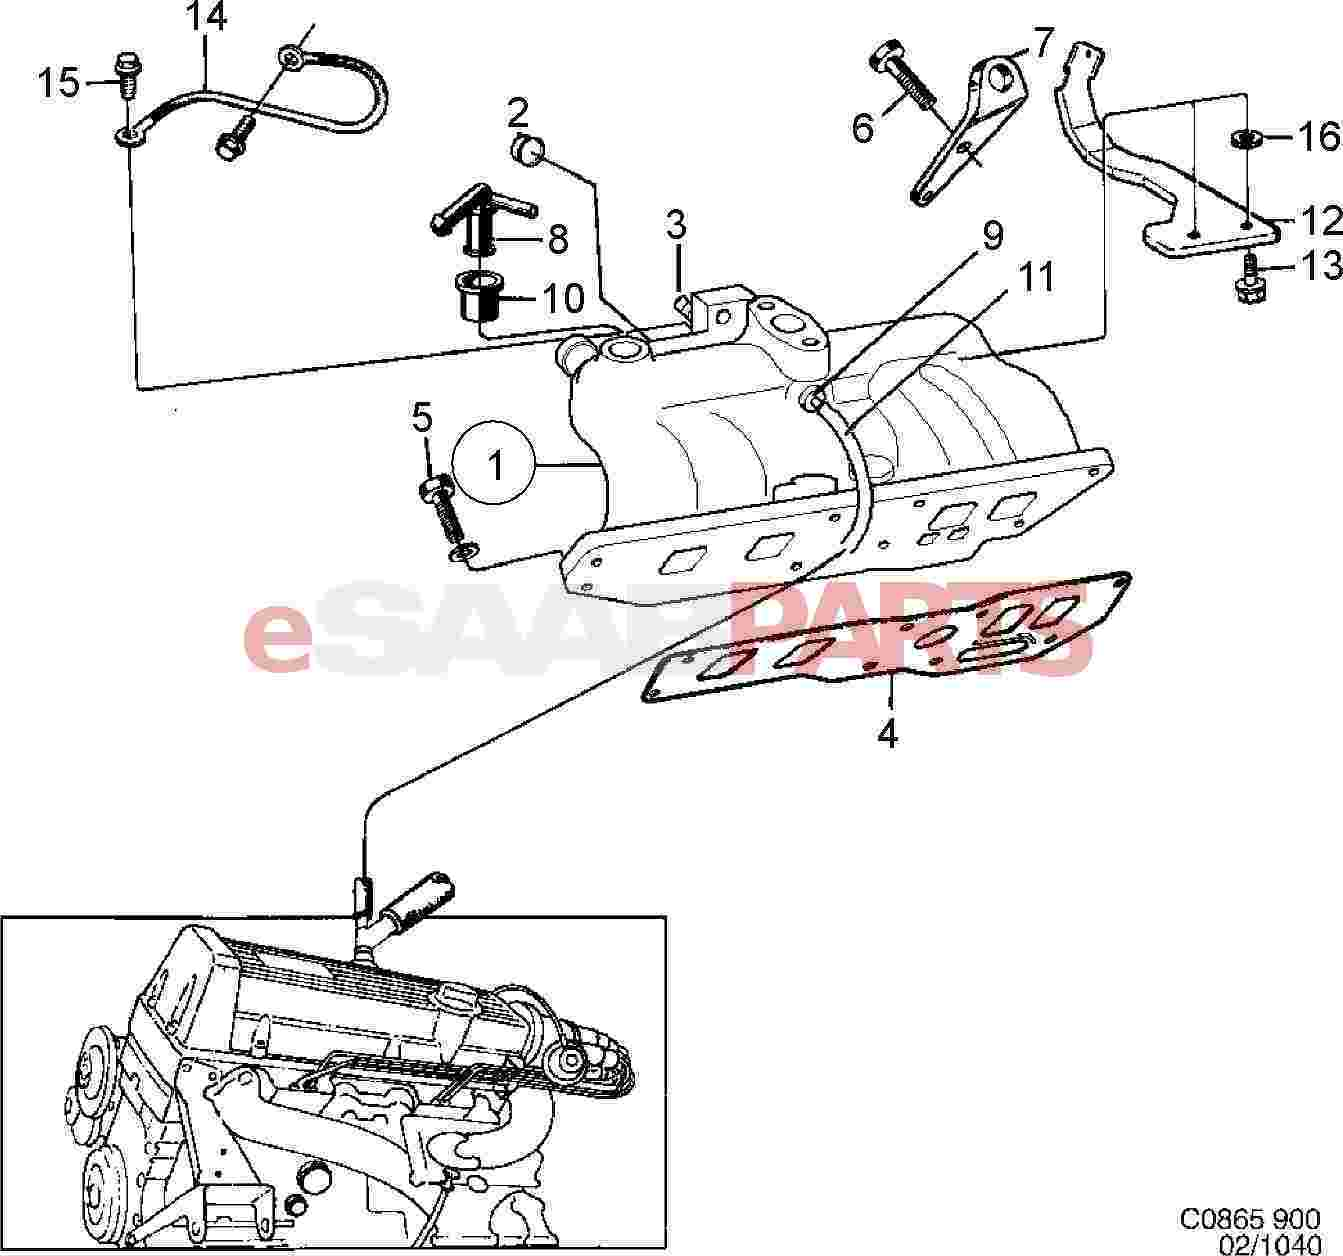 2003 Saab 9 3 Convertible Parts Top Diagram